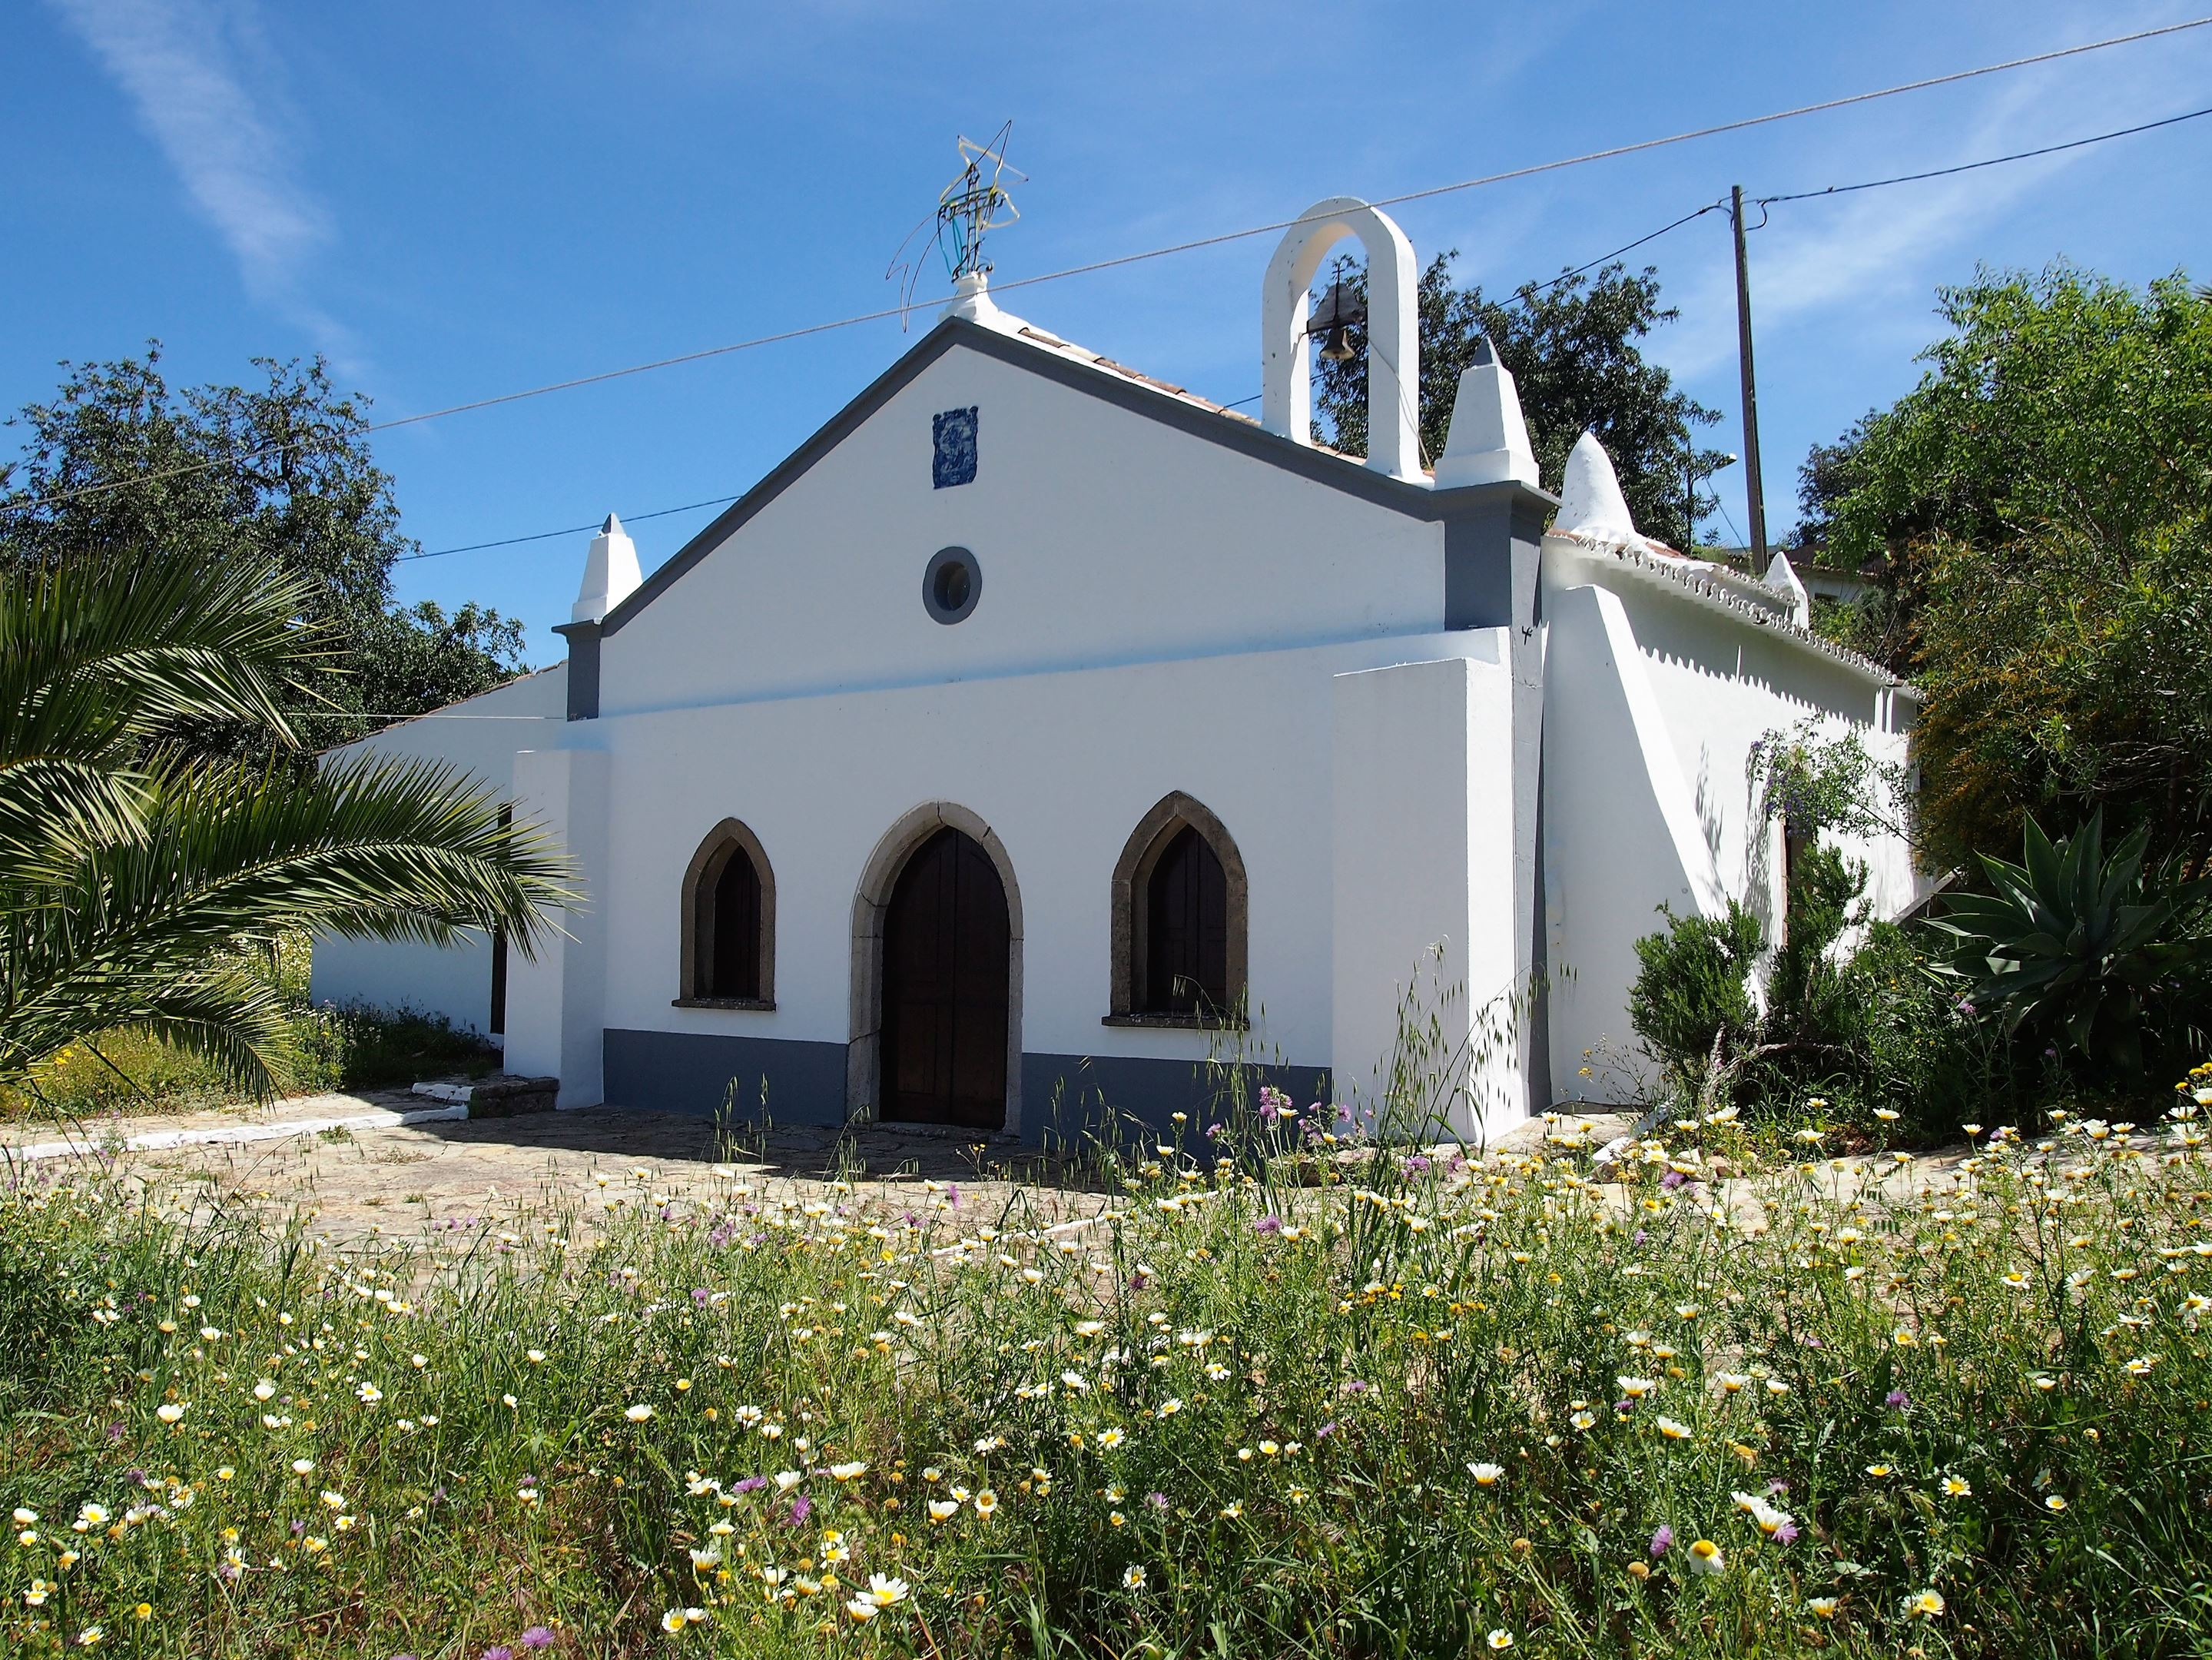 Almost at the top of Cerro de São Miguel, you will find a small village with this church, Igreja de St. Miguel near Olhão